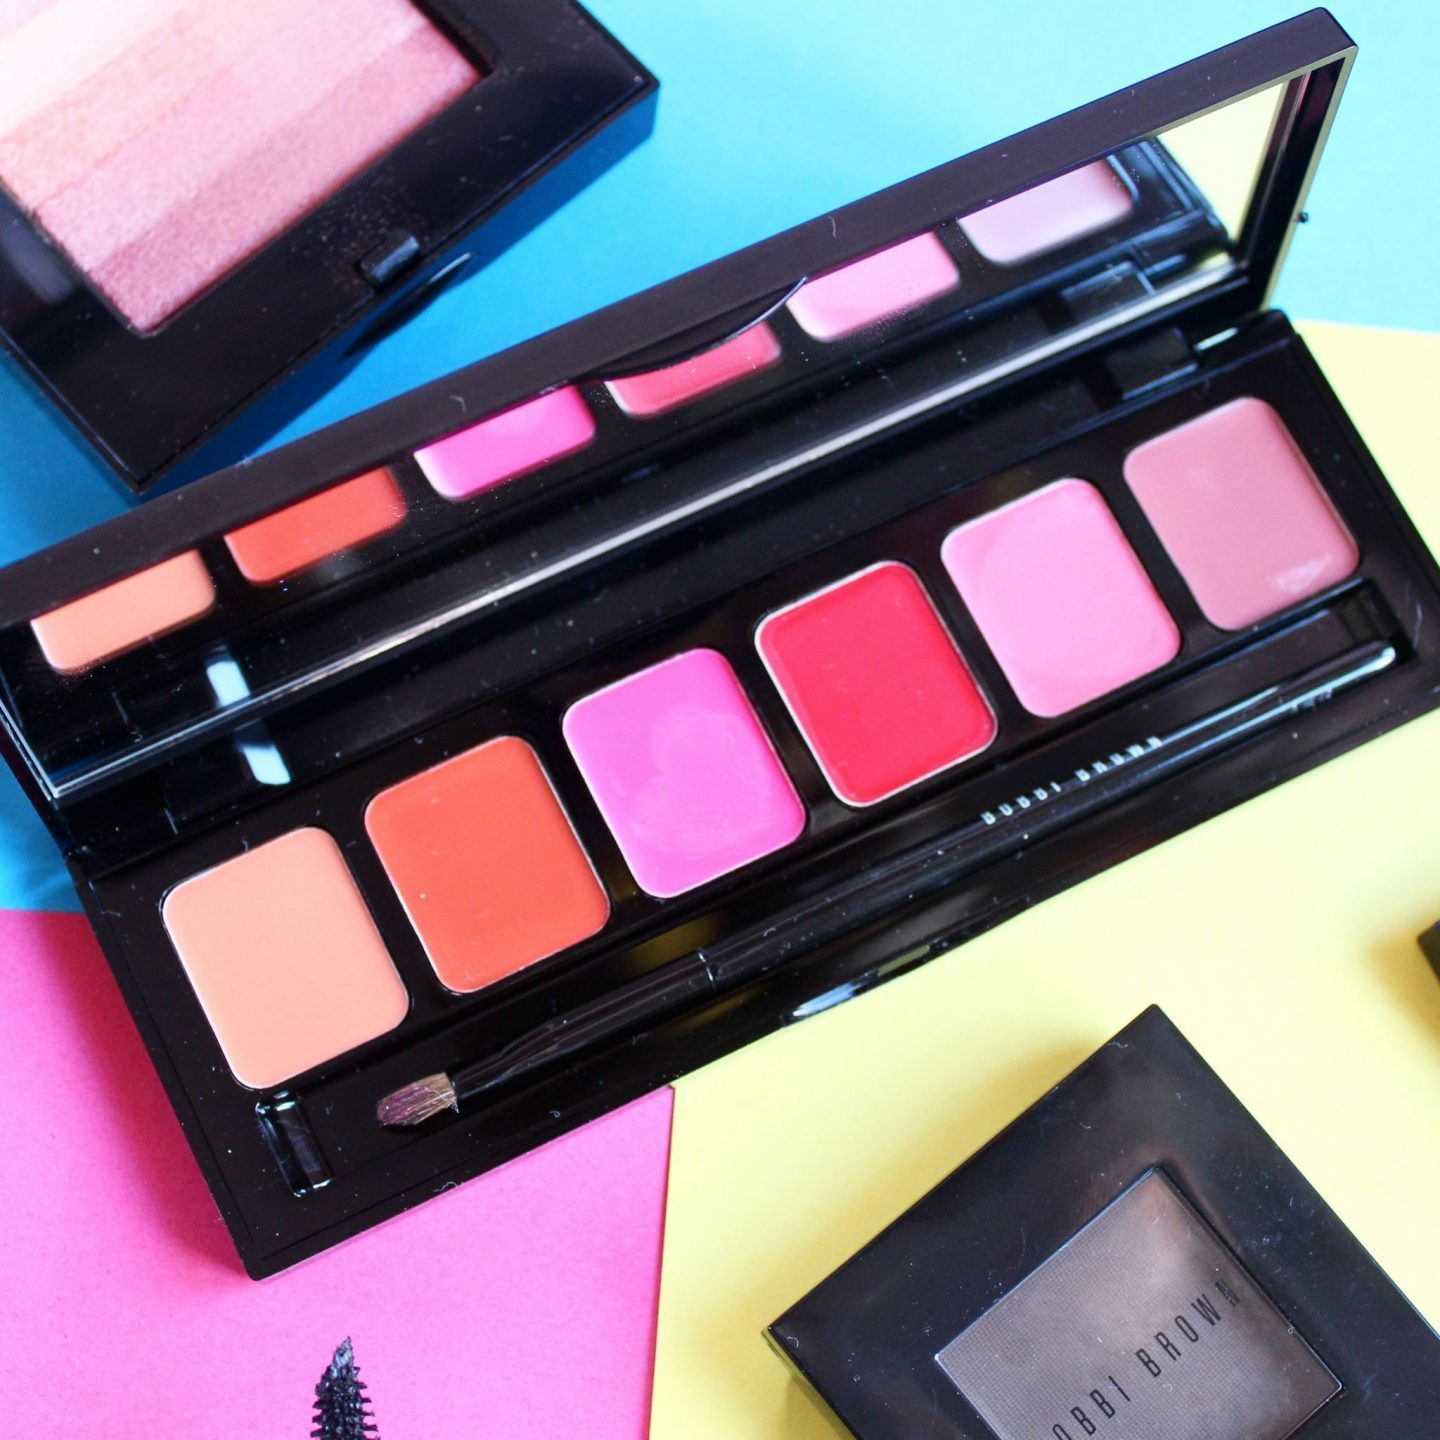 Bobbi Brown Crazy for Color Lip Palette | Review & Swatches